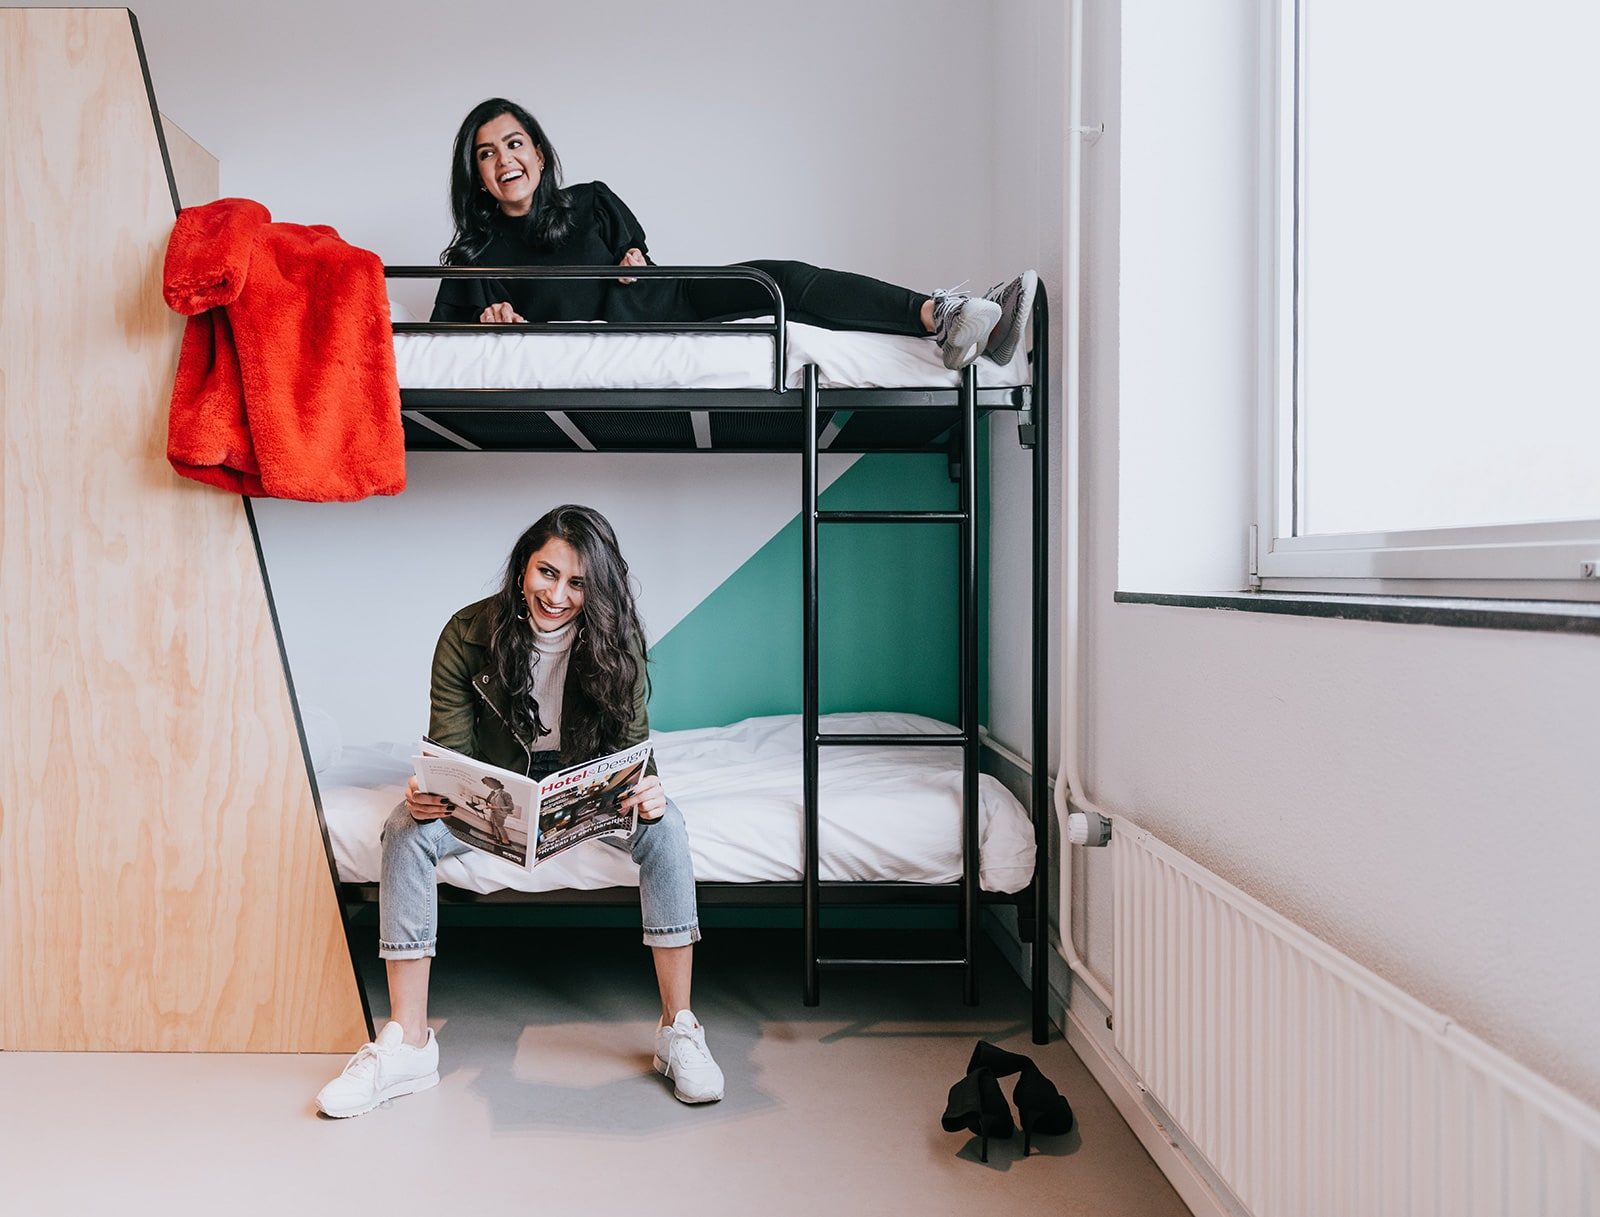 Two girls and bunk beds in Via Amsterdam hostel